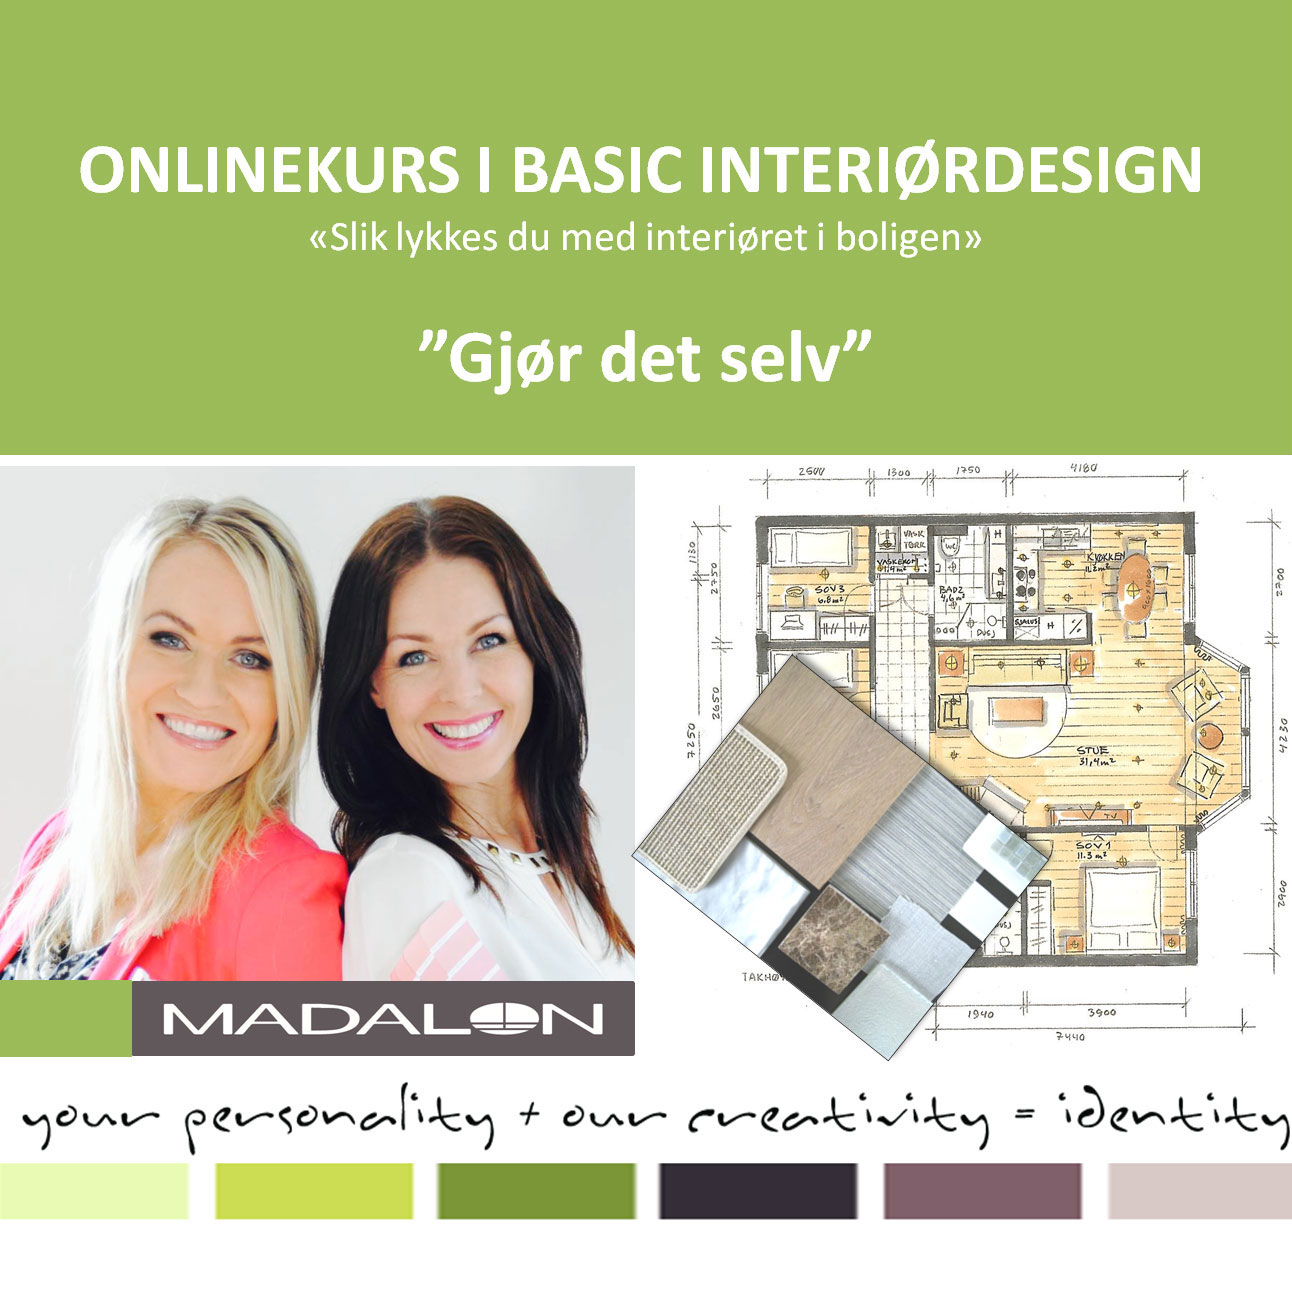 Basic Interiørdesign - online kurs